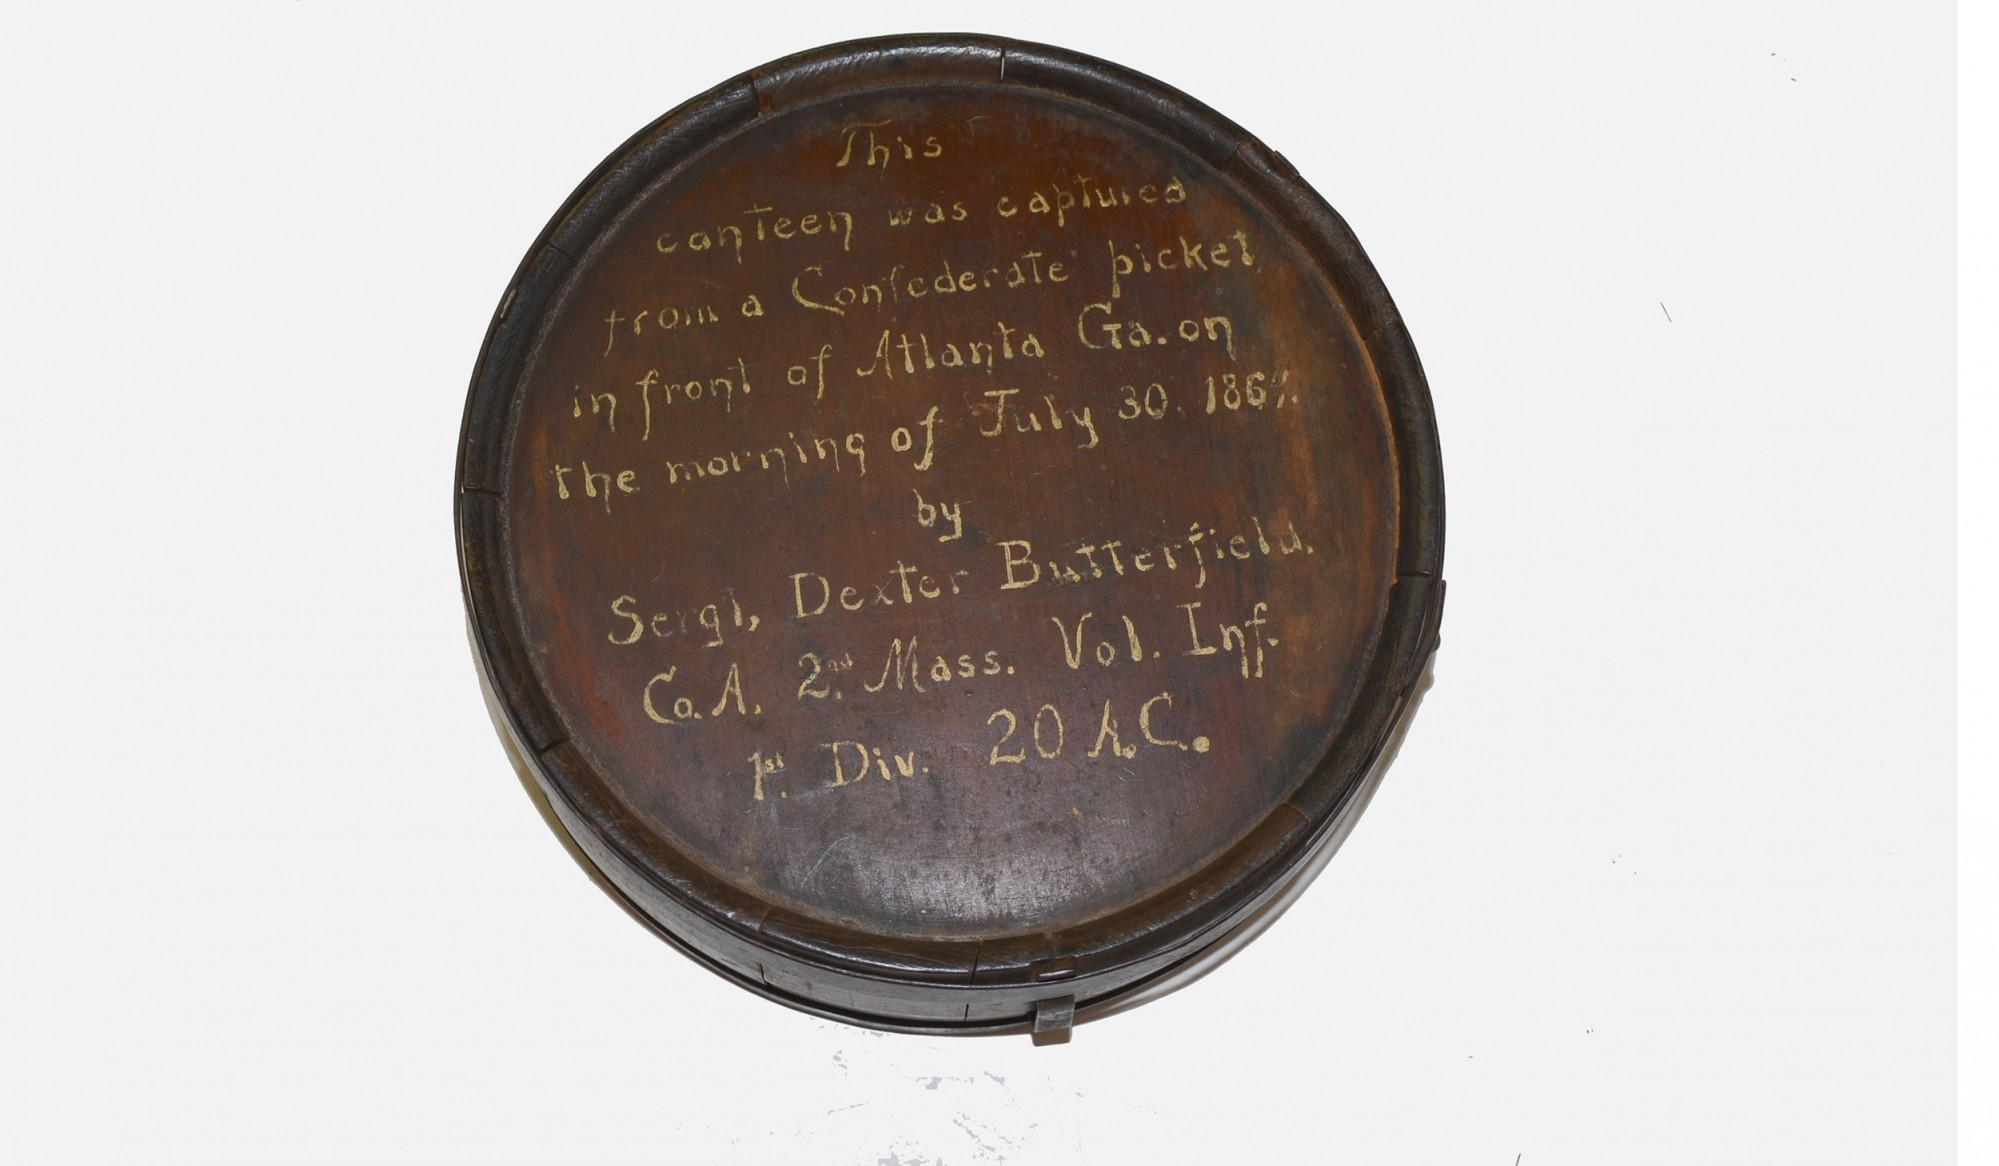 FANTASTIC INSCRIBED CONFEDERATE CANTEEN CAPTURED AT ATLANTA